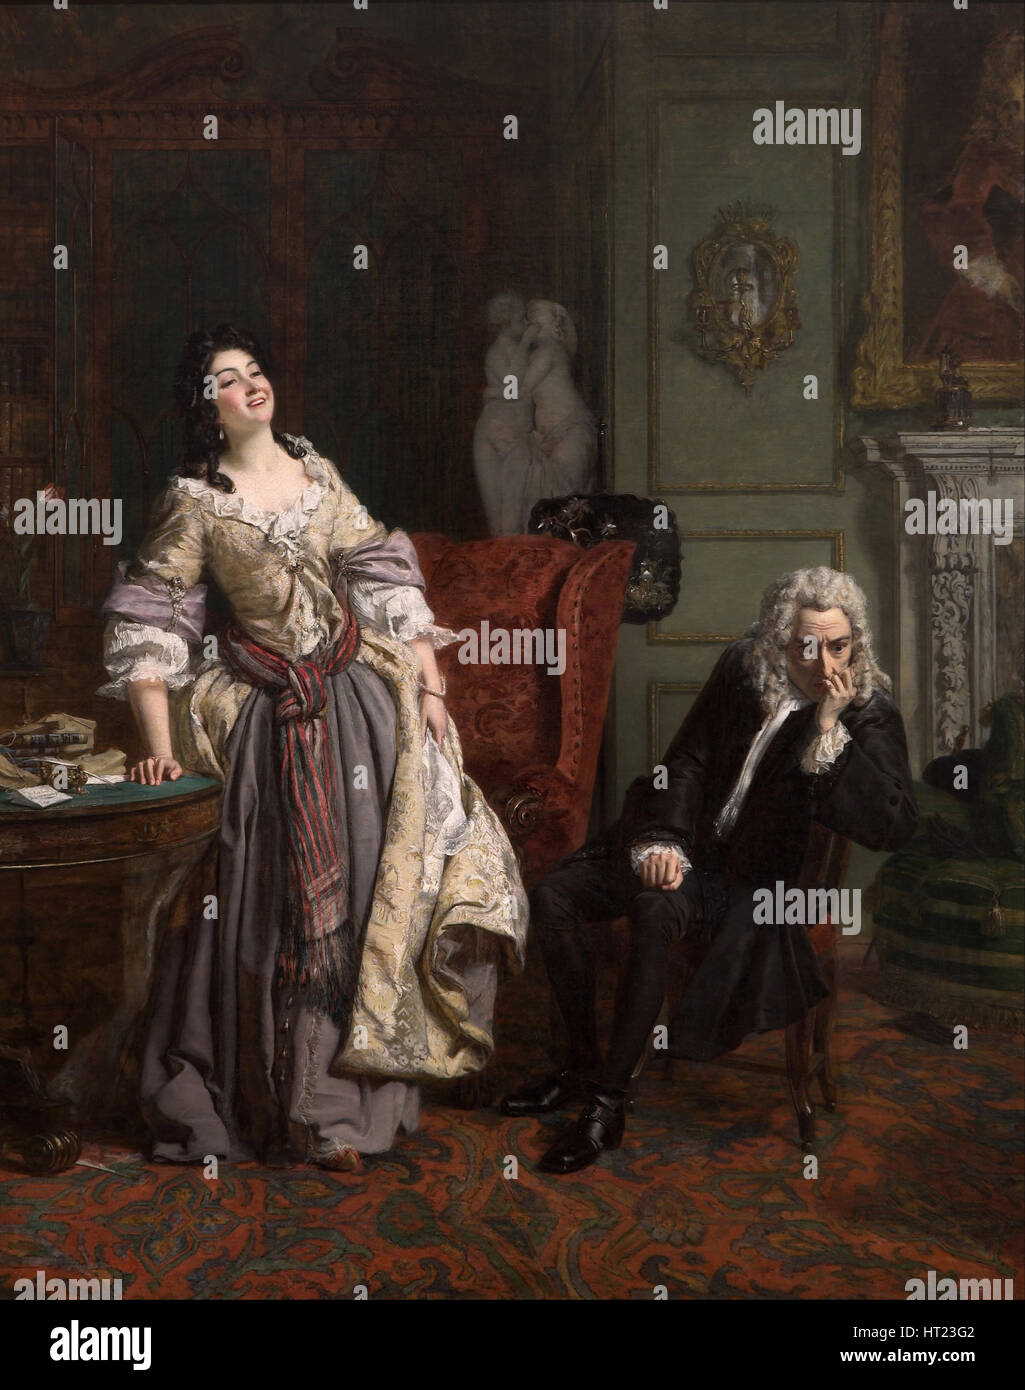 Alexander Pope declared his love to Lady Mary Wortley Montagu, 1852. Artist: Frith, William Powell (1819-1909) - Stock Image